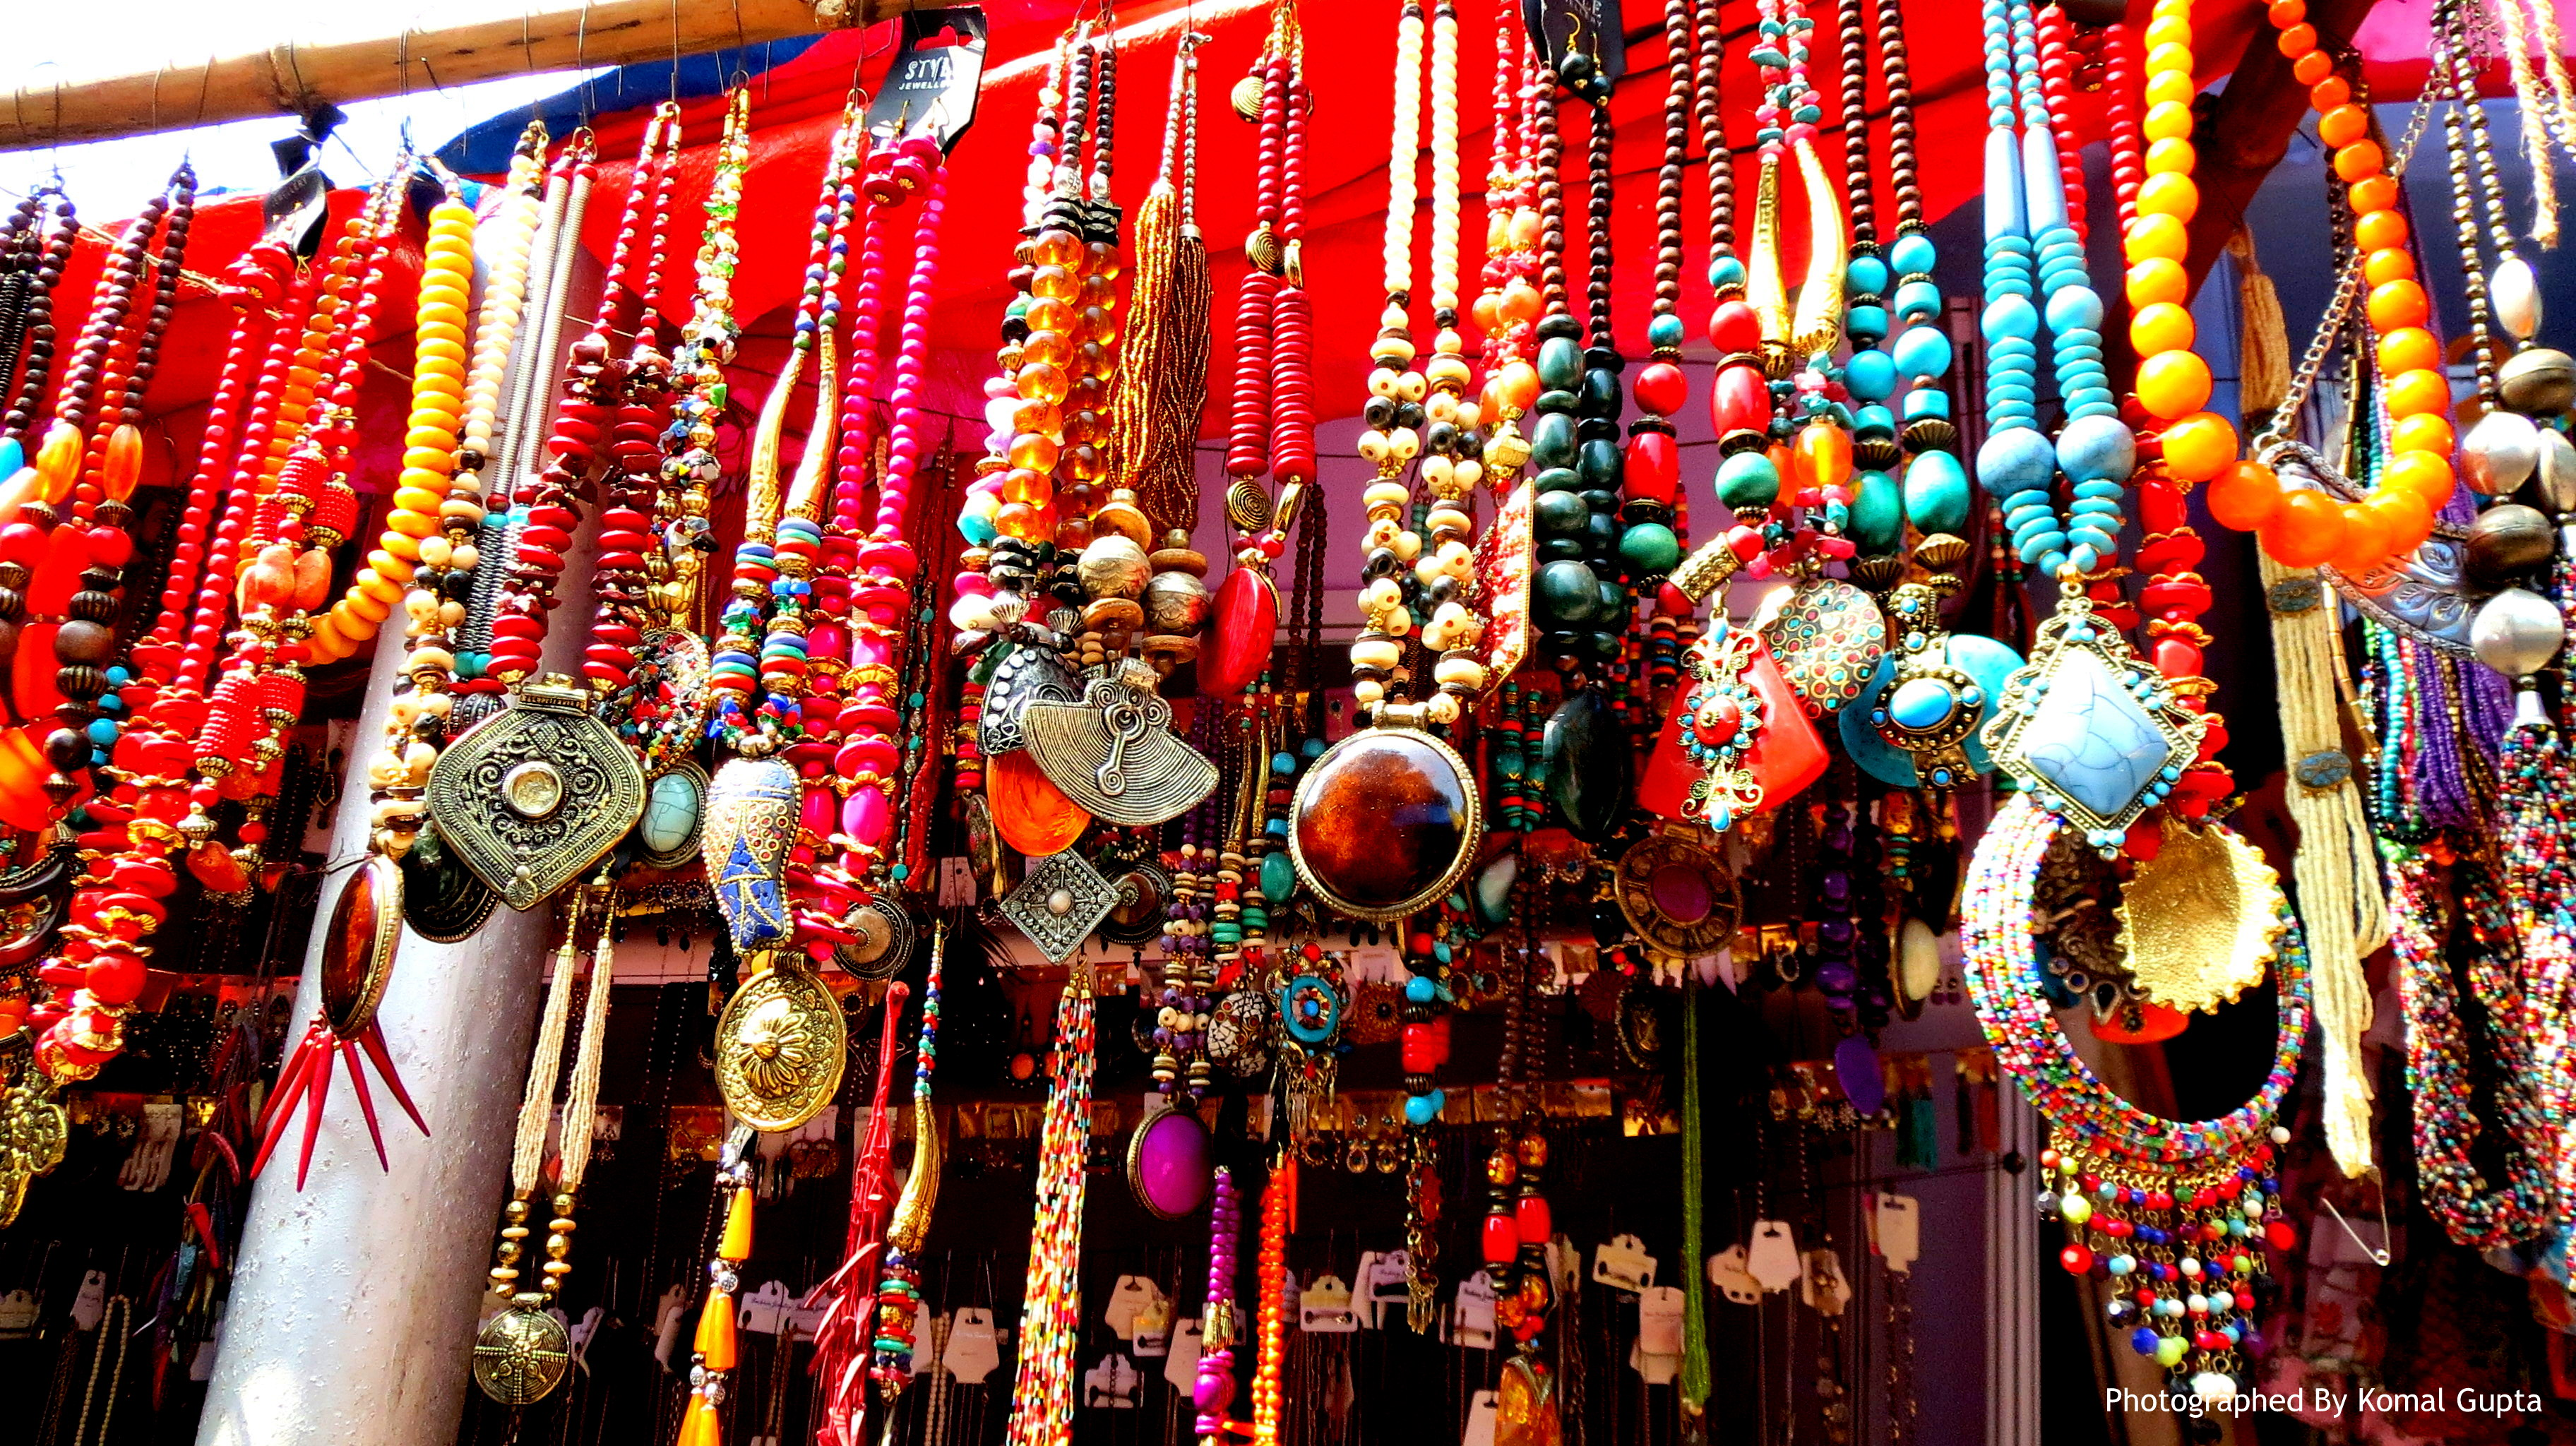 Junkie Jewels – Beading from Indian Streets